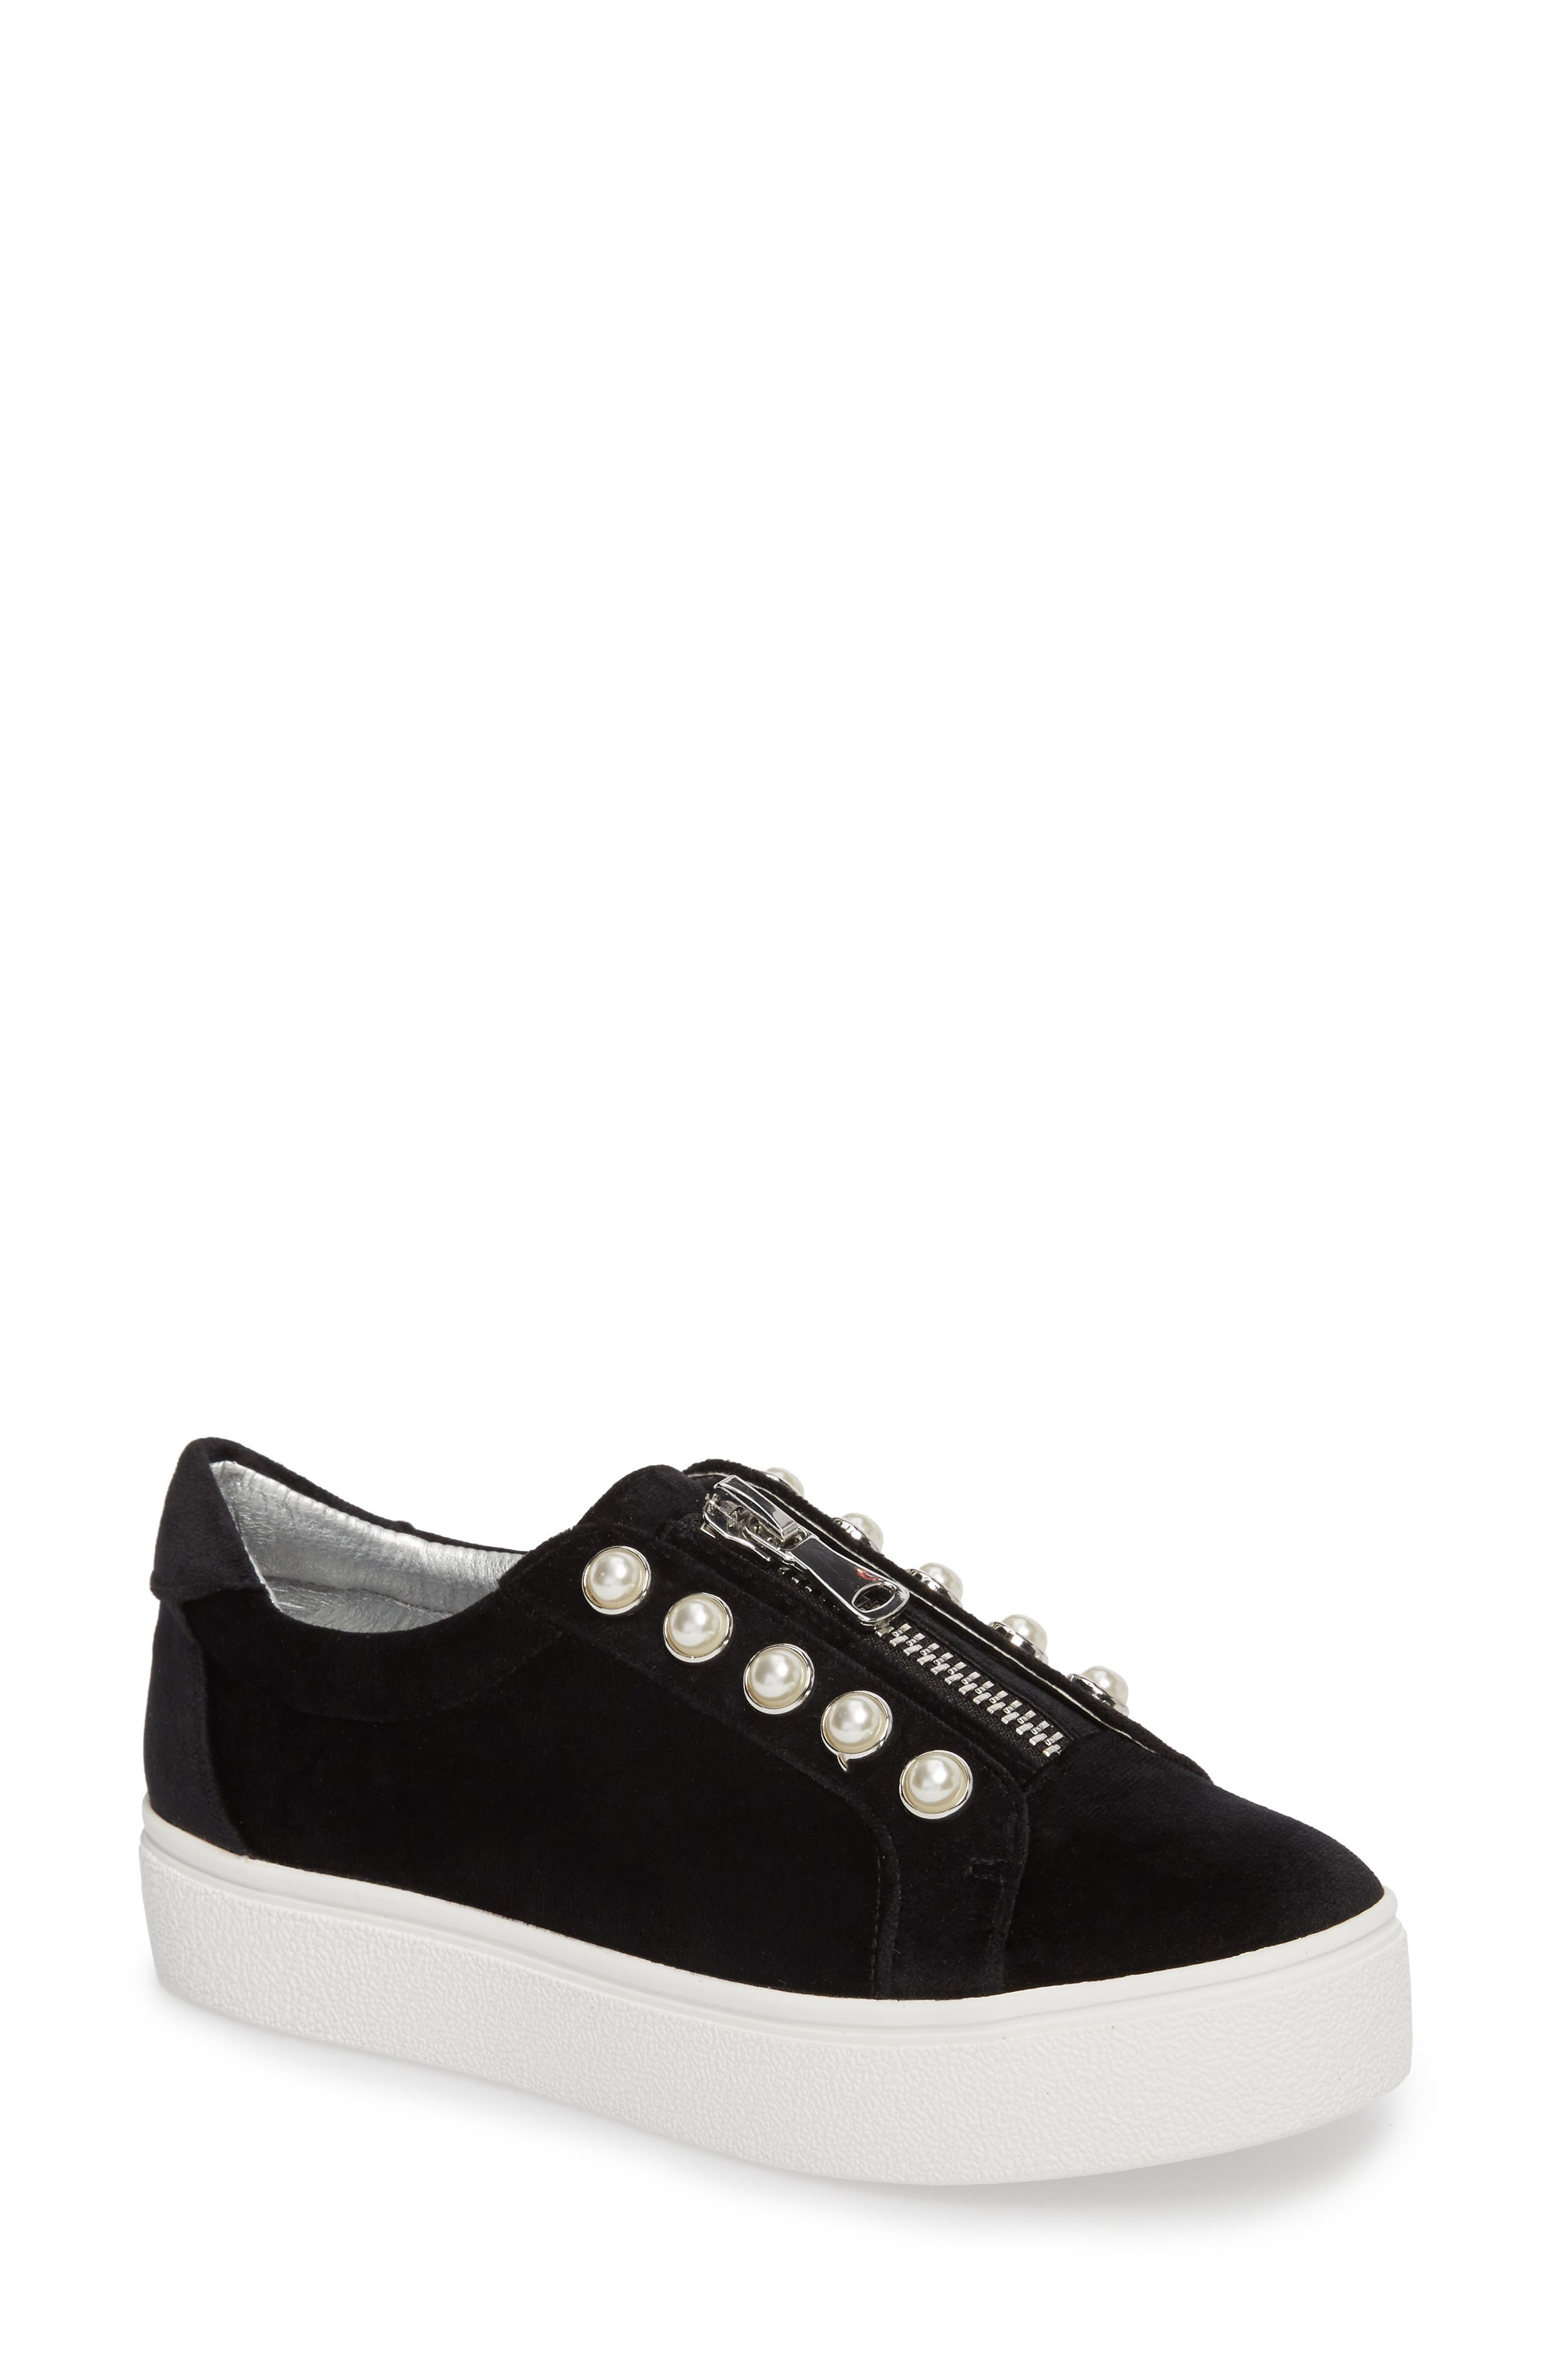 Lynn Embellished Platform Sneaker,                             Main thumbnail 1, color,                             001